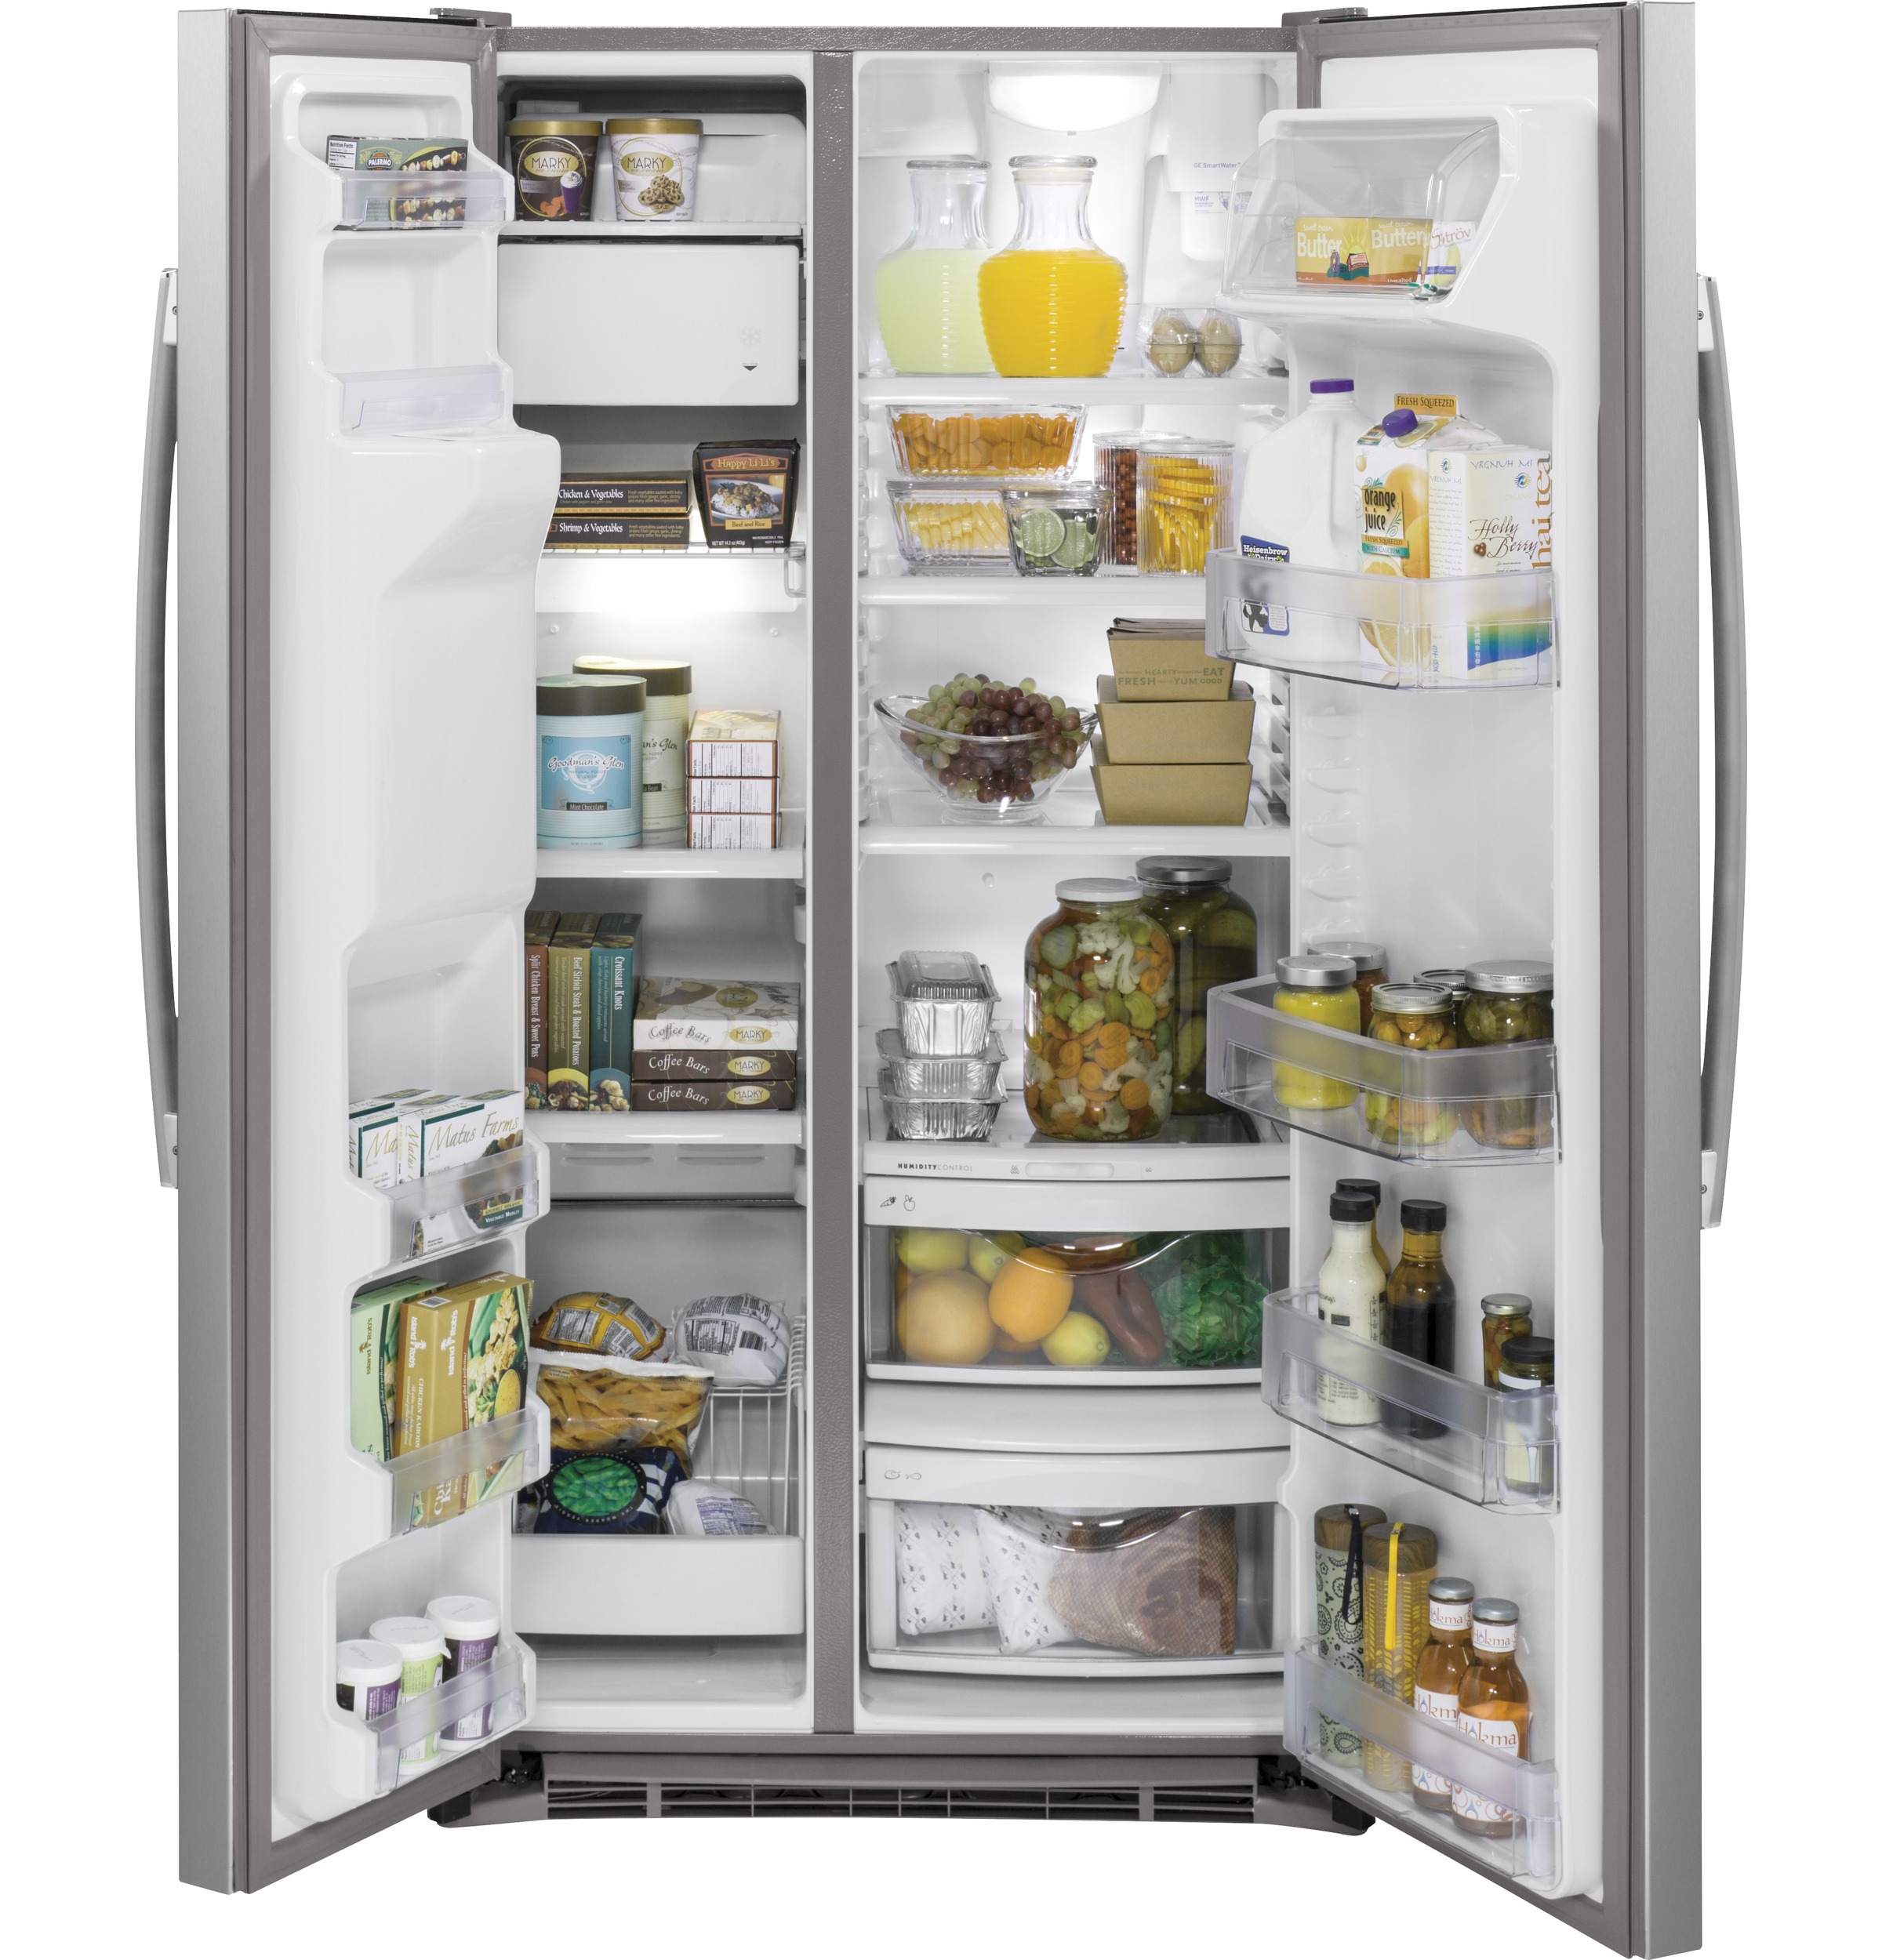 Model: GZS22DSJSS | GE® 21.9 Cu. Ft. Counter-Depth Side-By-Side Refrigerator